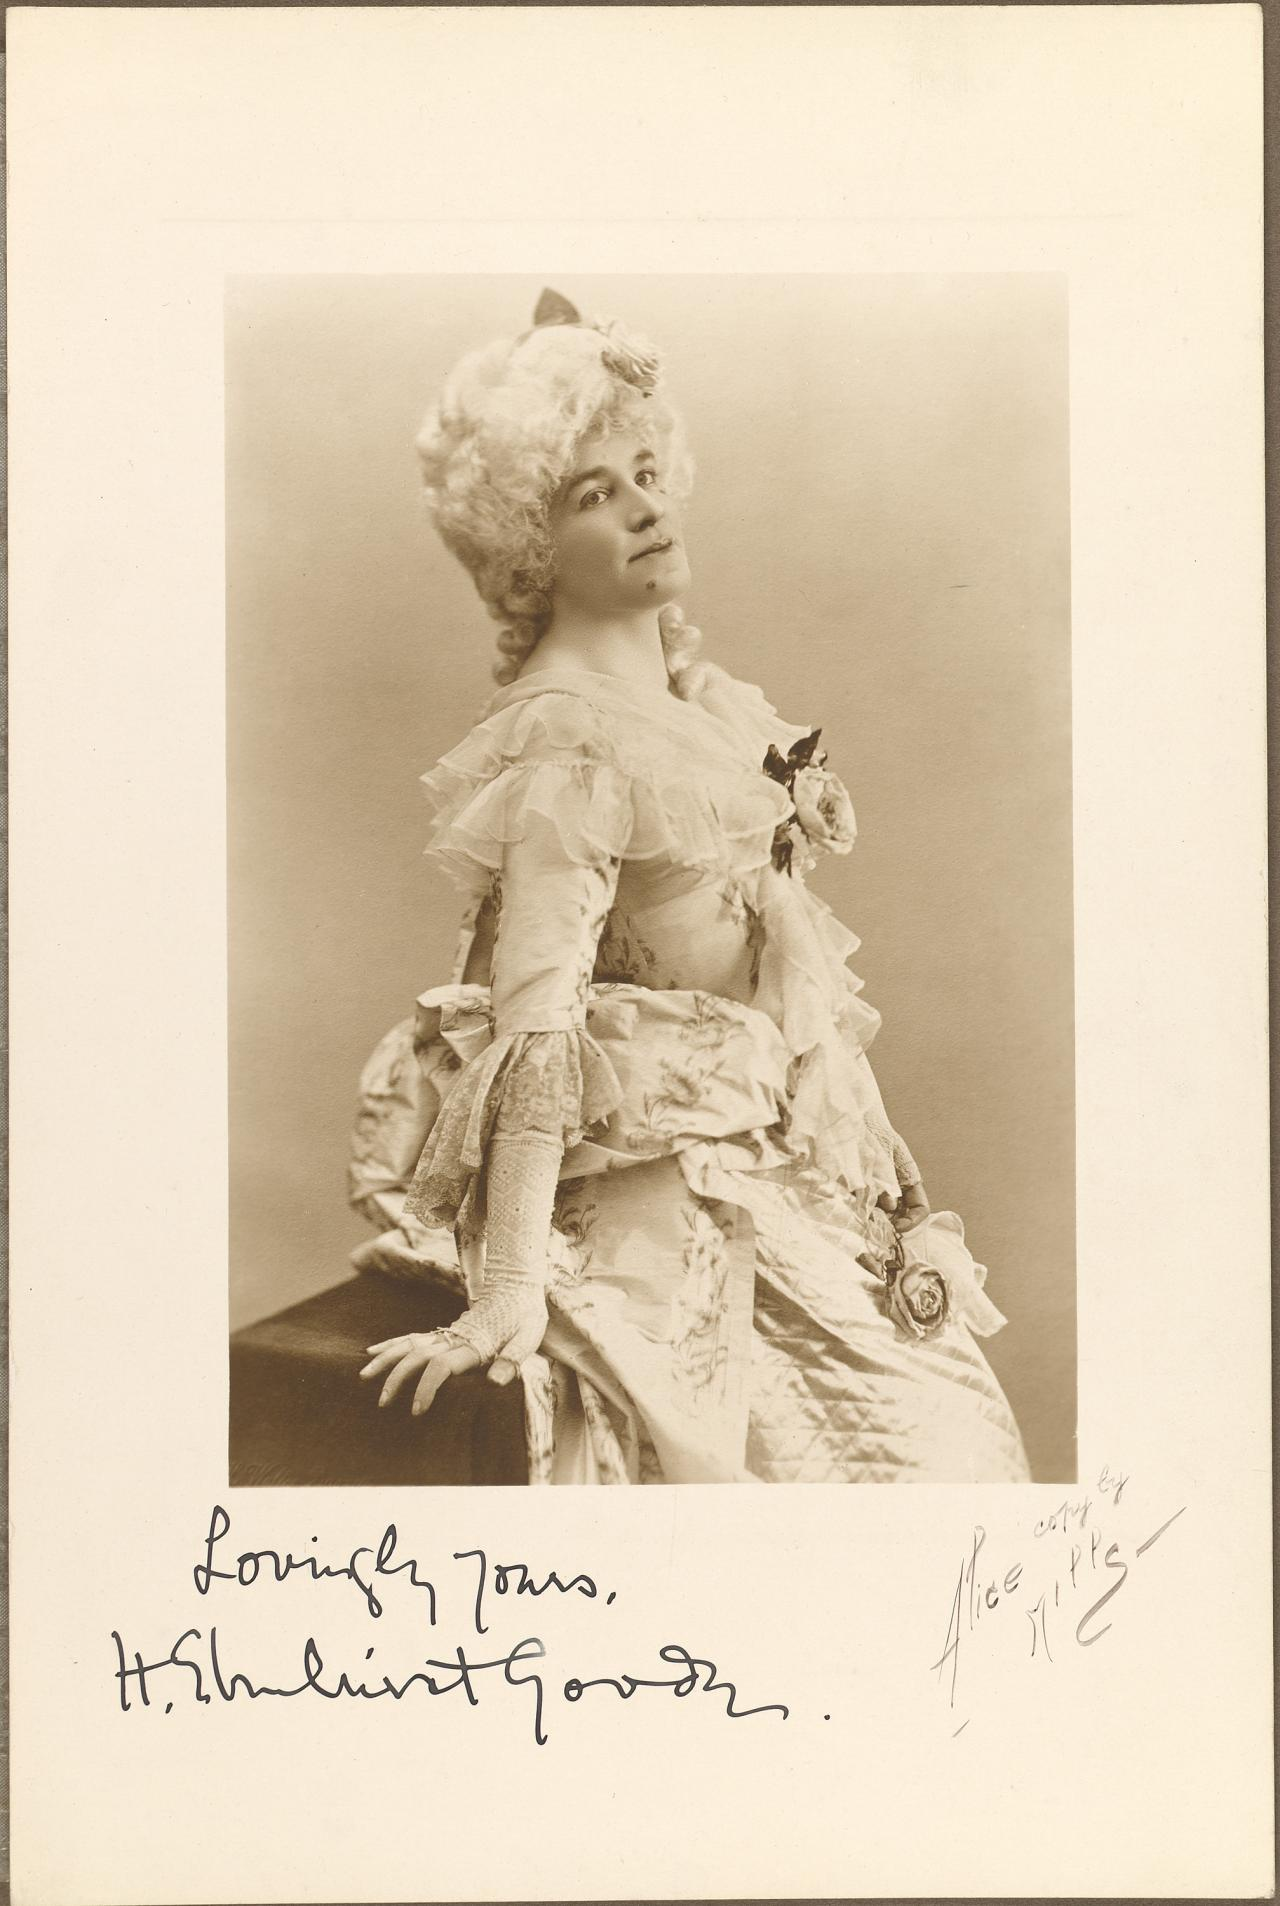 Mme Goode in costume